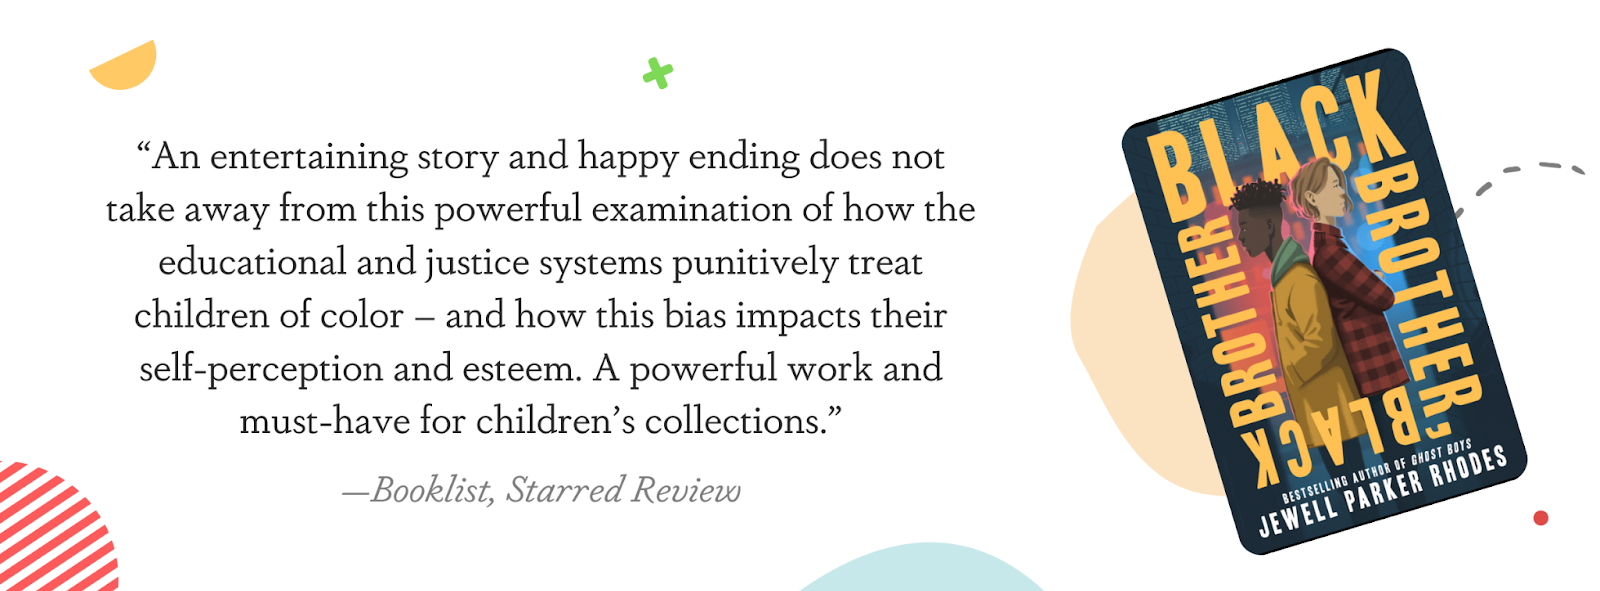 """This image displays a quote from a Booklist starred review: """"An entertaining story and happy ending does not take away from this powerful examination of how the educational and justice systems punitively treat children of color - and how this bias impacts their self-perception and esteem. A powerful work and must-have for children's collections."""""""